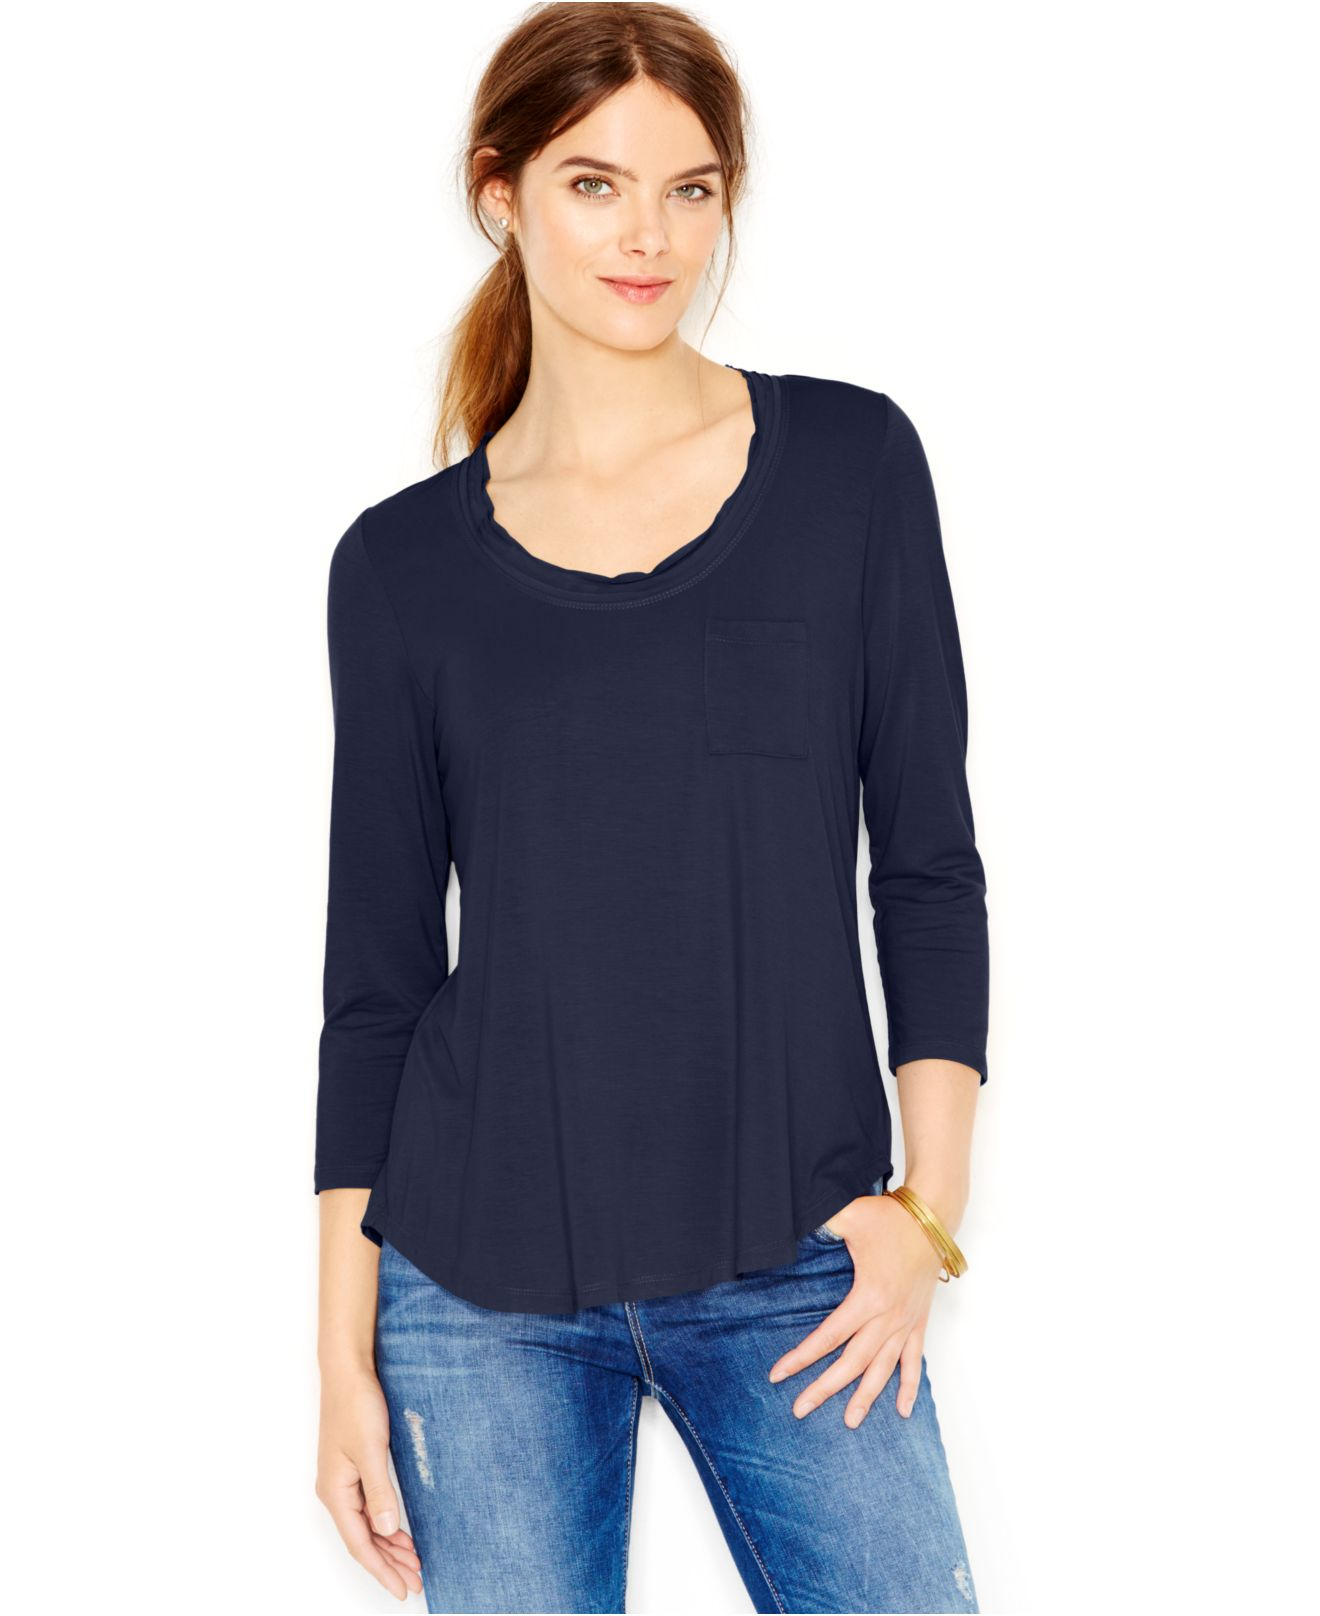 Maison jules long sleeve scoop neck t shirt in blue lyst for Scoop neck long sleeve shirt